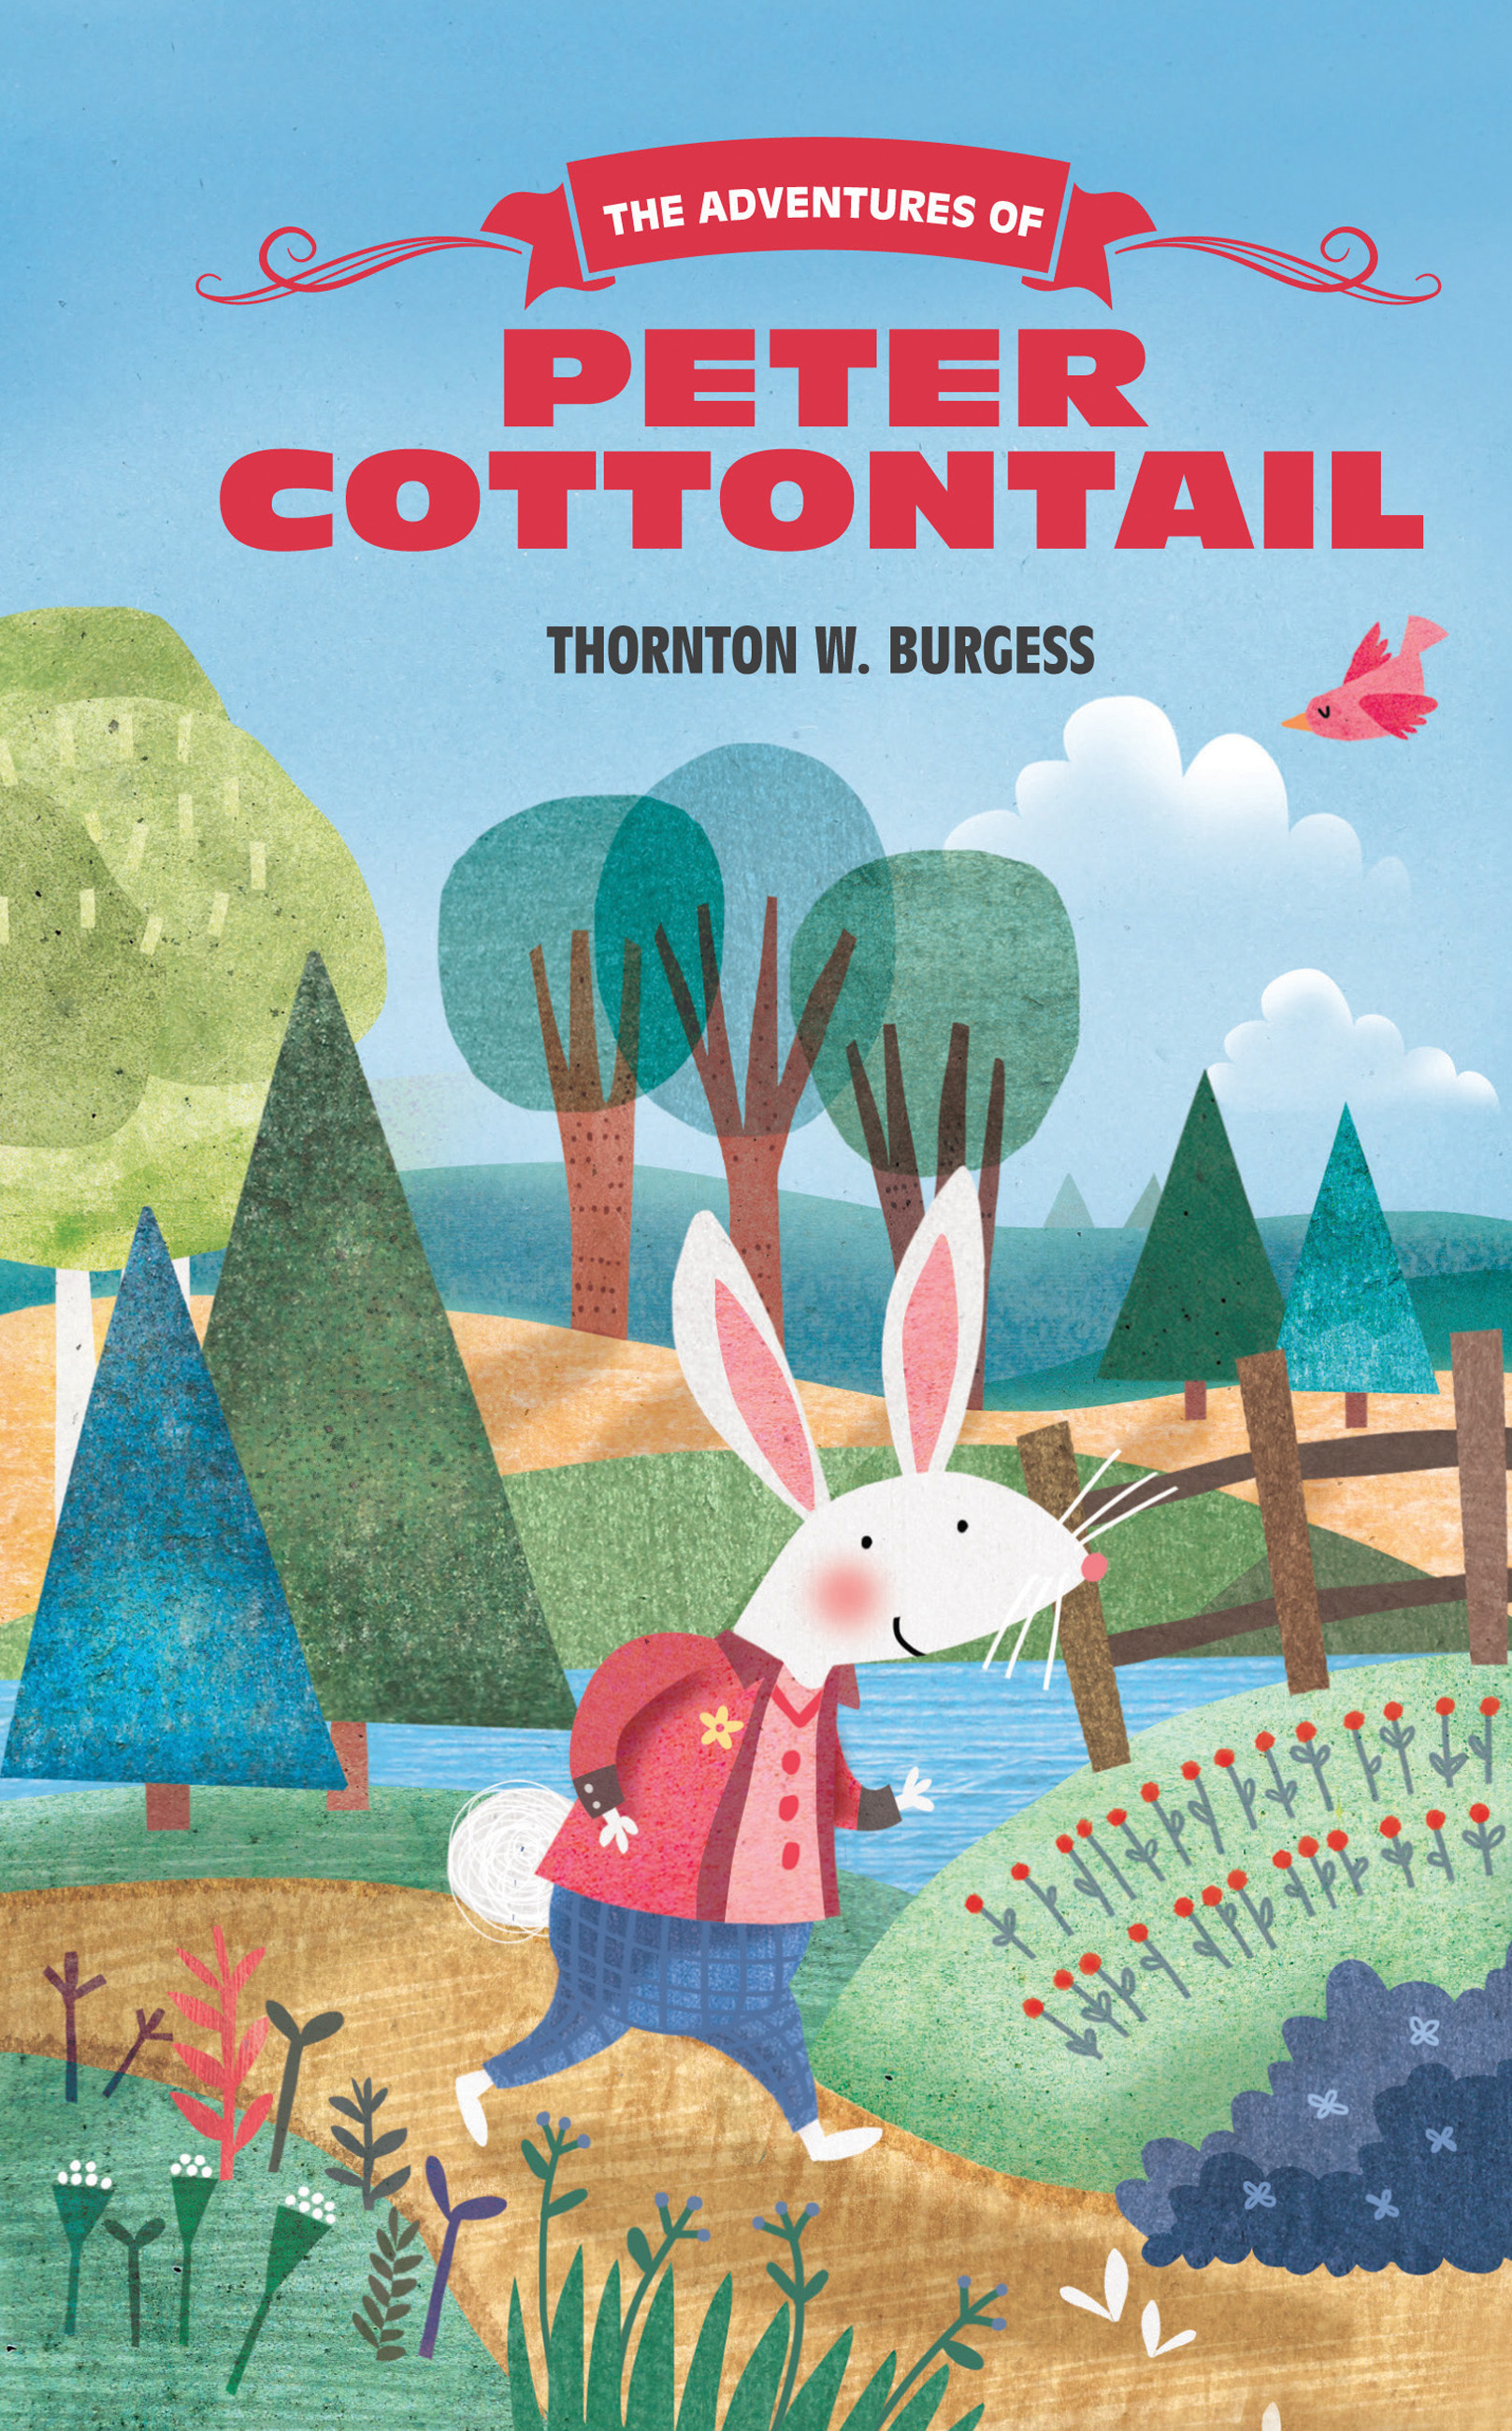 The Adventures of Peter Cottontail Adventures of Peter Cottontail